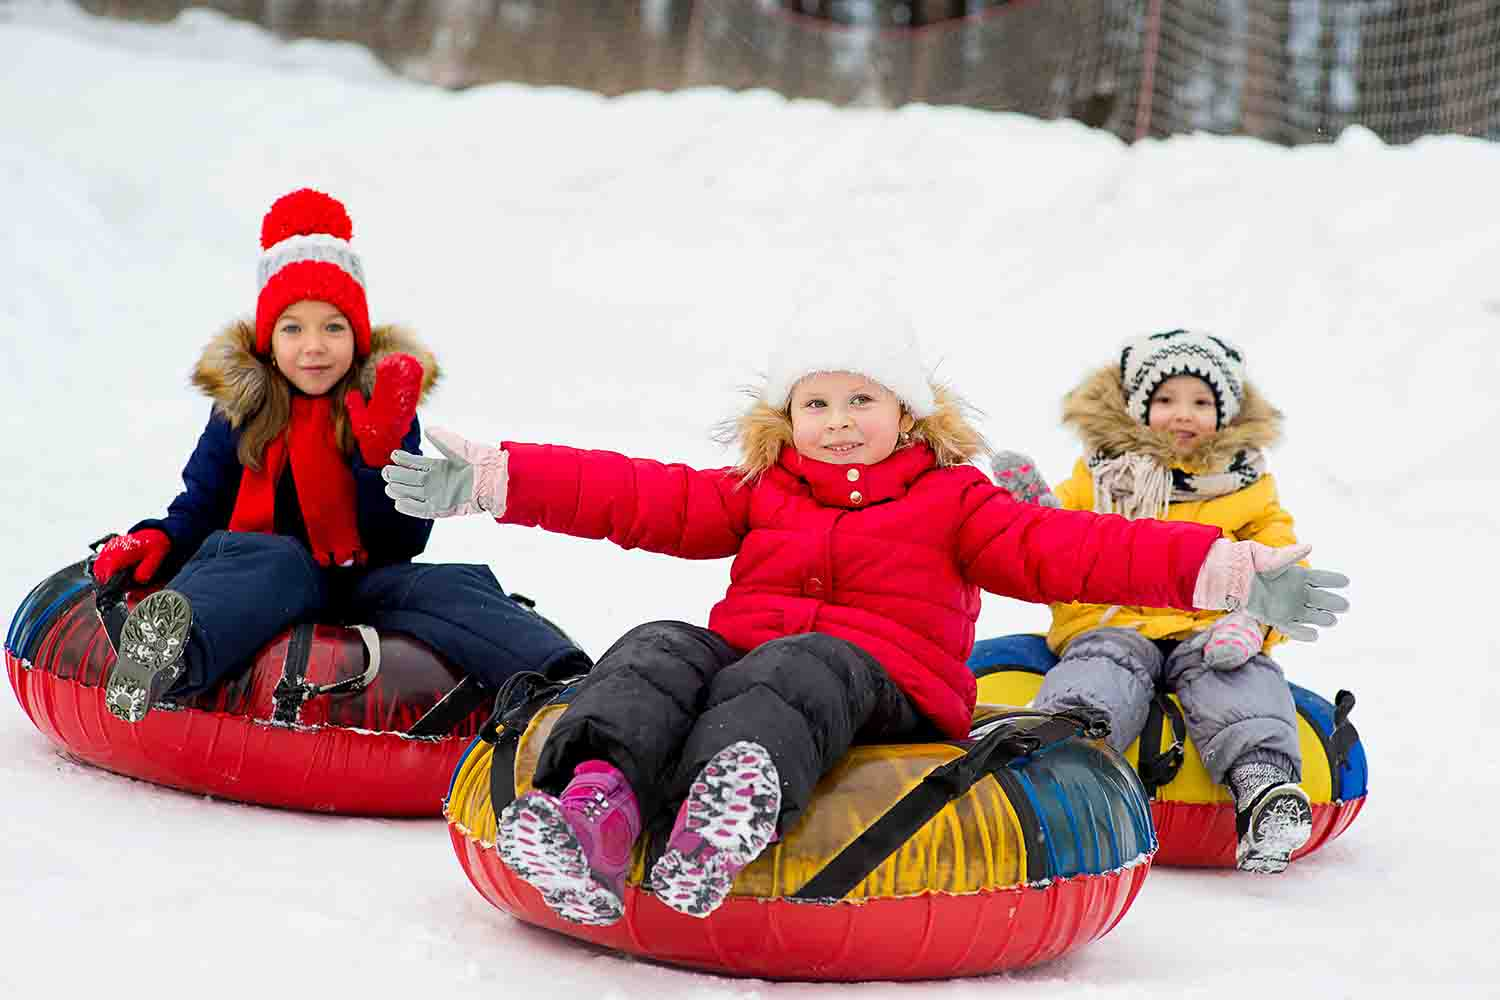 Kids enjoying tubing in Mammoth Lakes, California